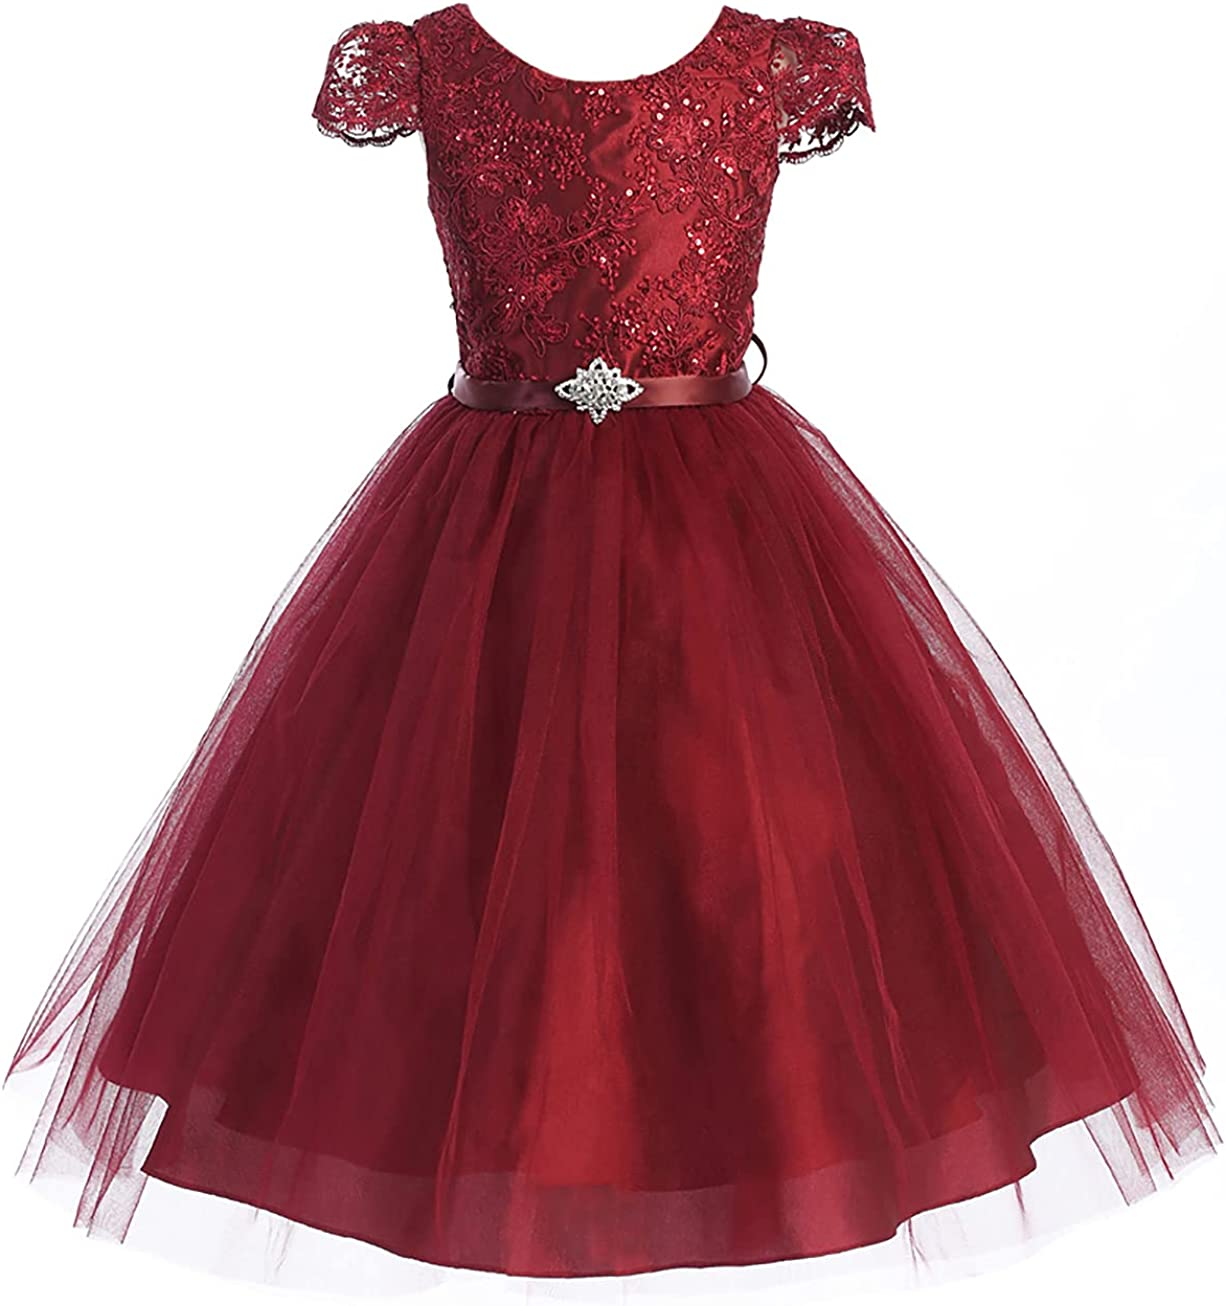 Dreamer P Sleeveless Sequins Rhinestones Flower Gi Pageant Tulle Max 72% OFF Max 49% OFF